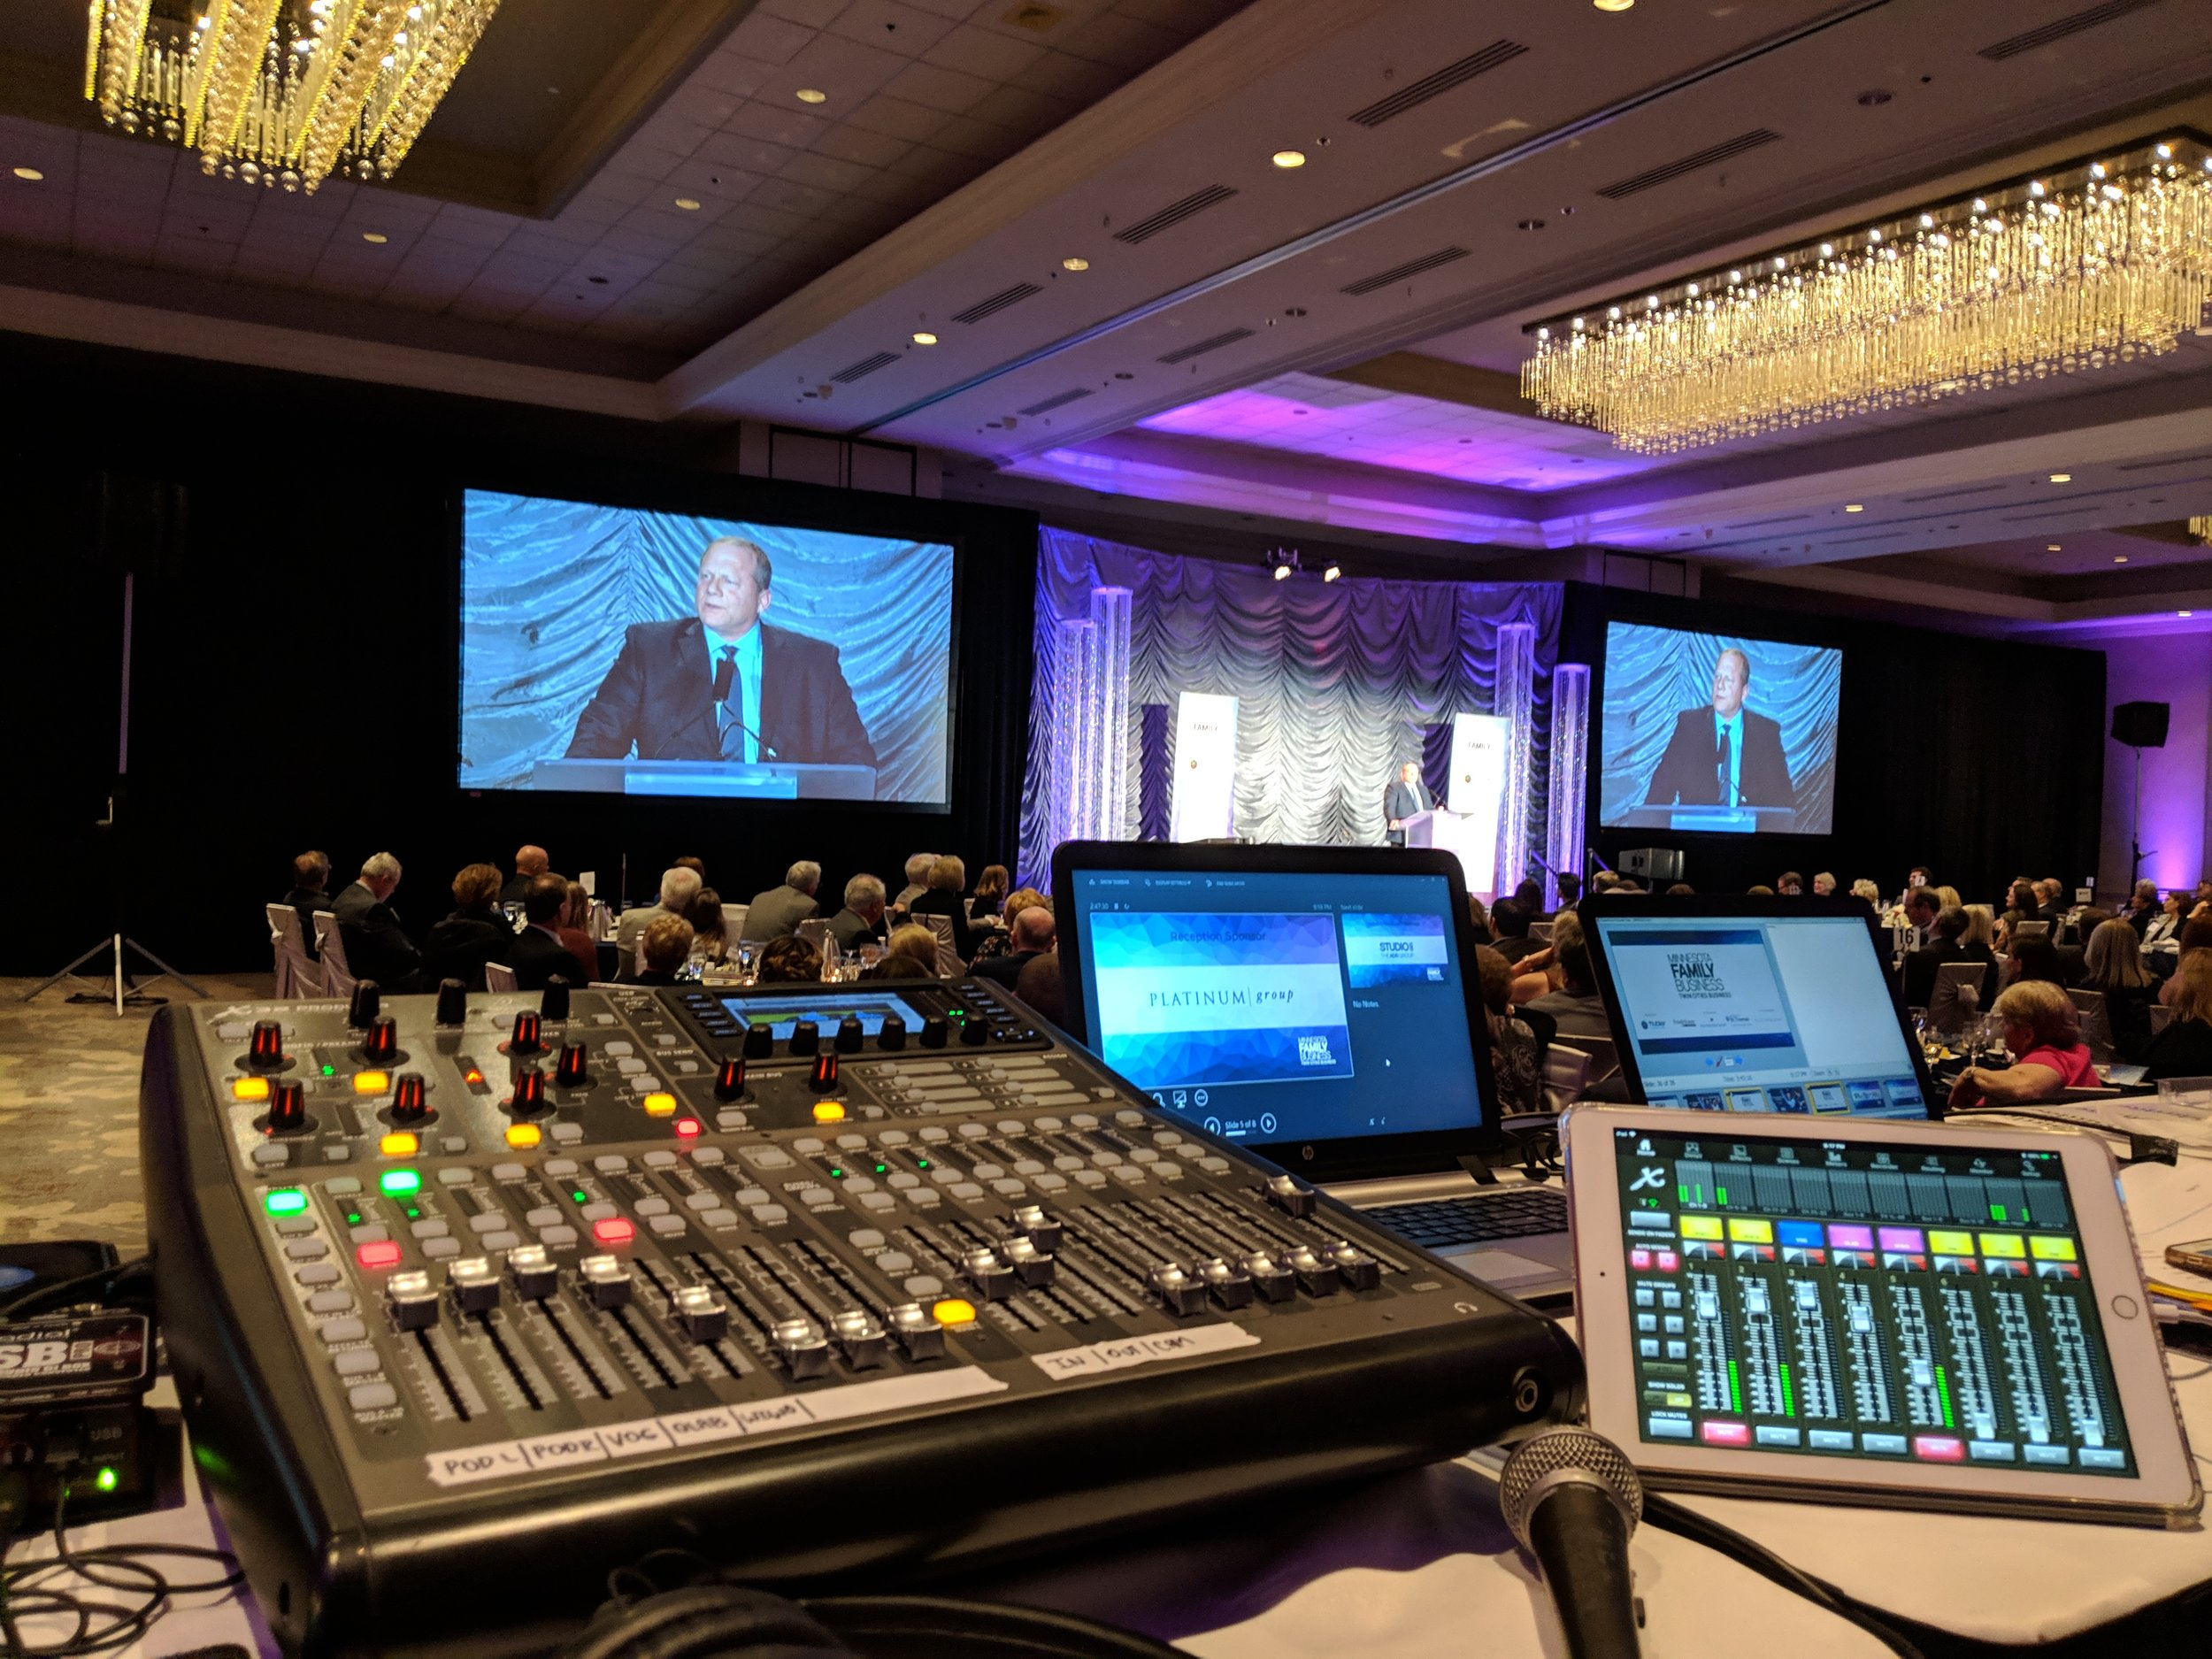 Picture from the AV for You tech table at the Hilton Minneapolis